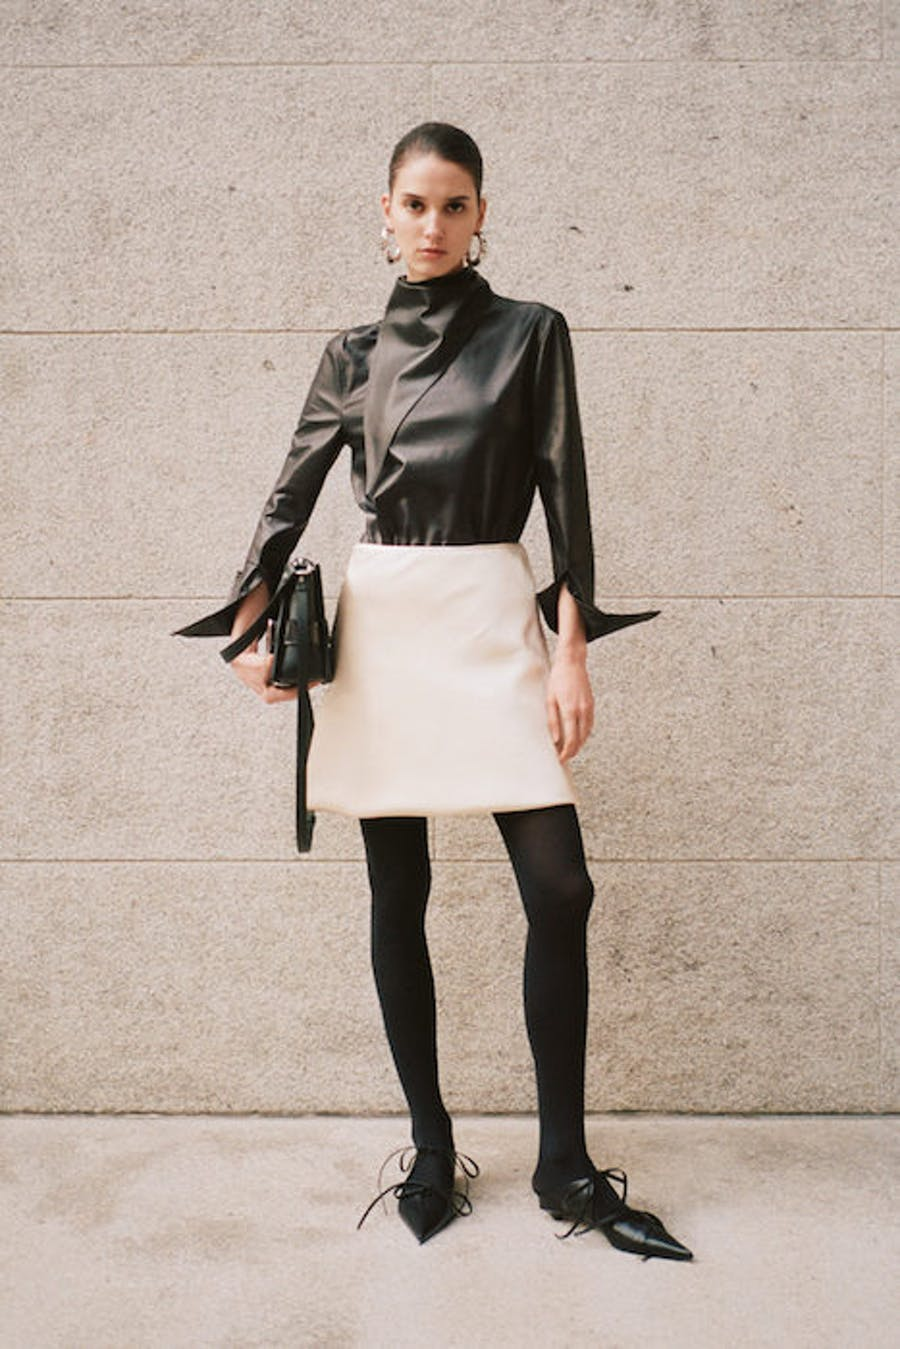 Proenza Schouler High Neck Top in Black Leather White Mini Skirt in White Black Leggings Tie Up Flats Pre Fall 20